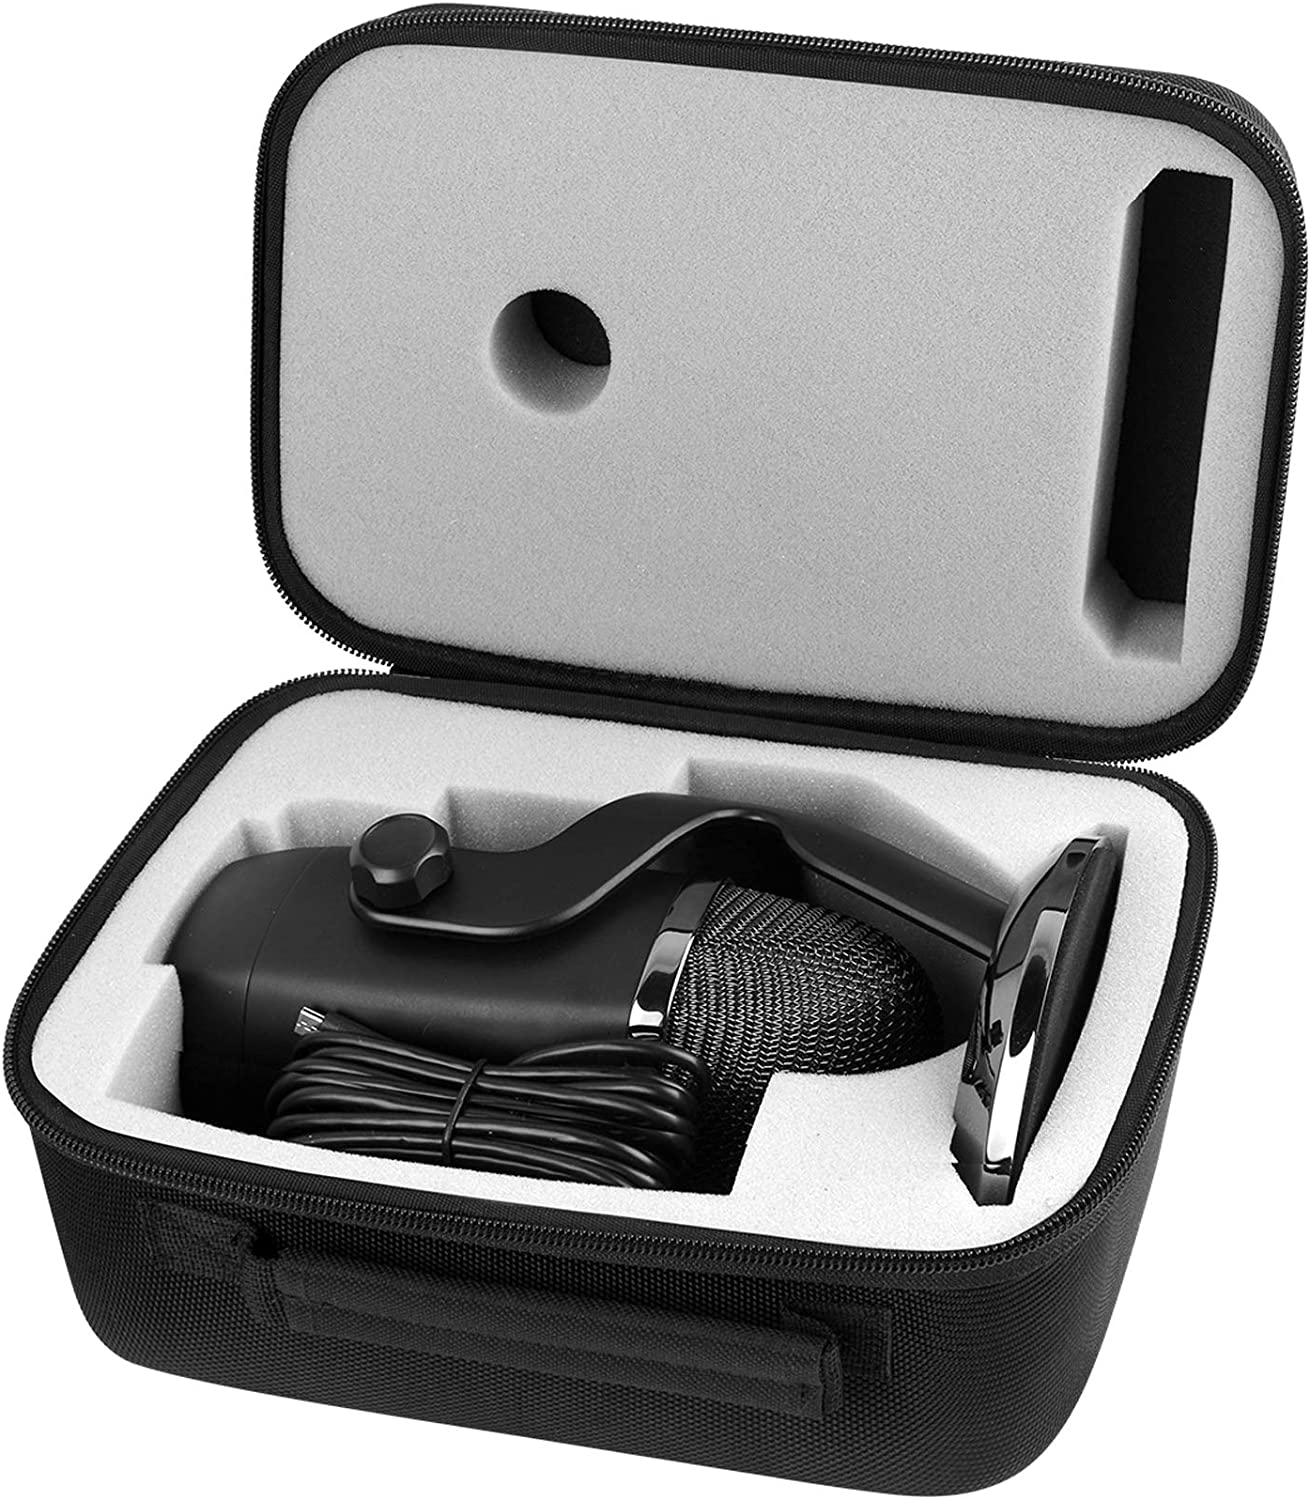 Case for Blue Yeti USB Microphone/Yeti Pro/Yeti X, Also Fit Cable and Other Accessories, by COMECASE